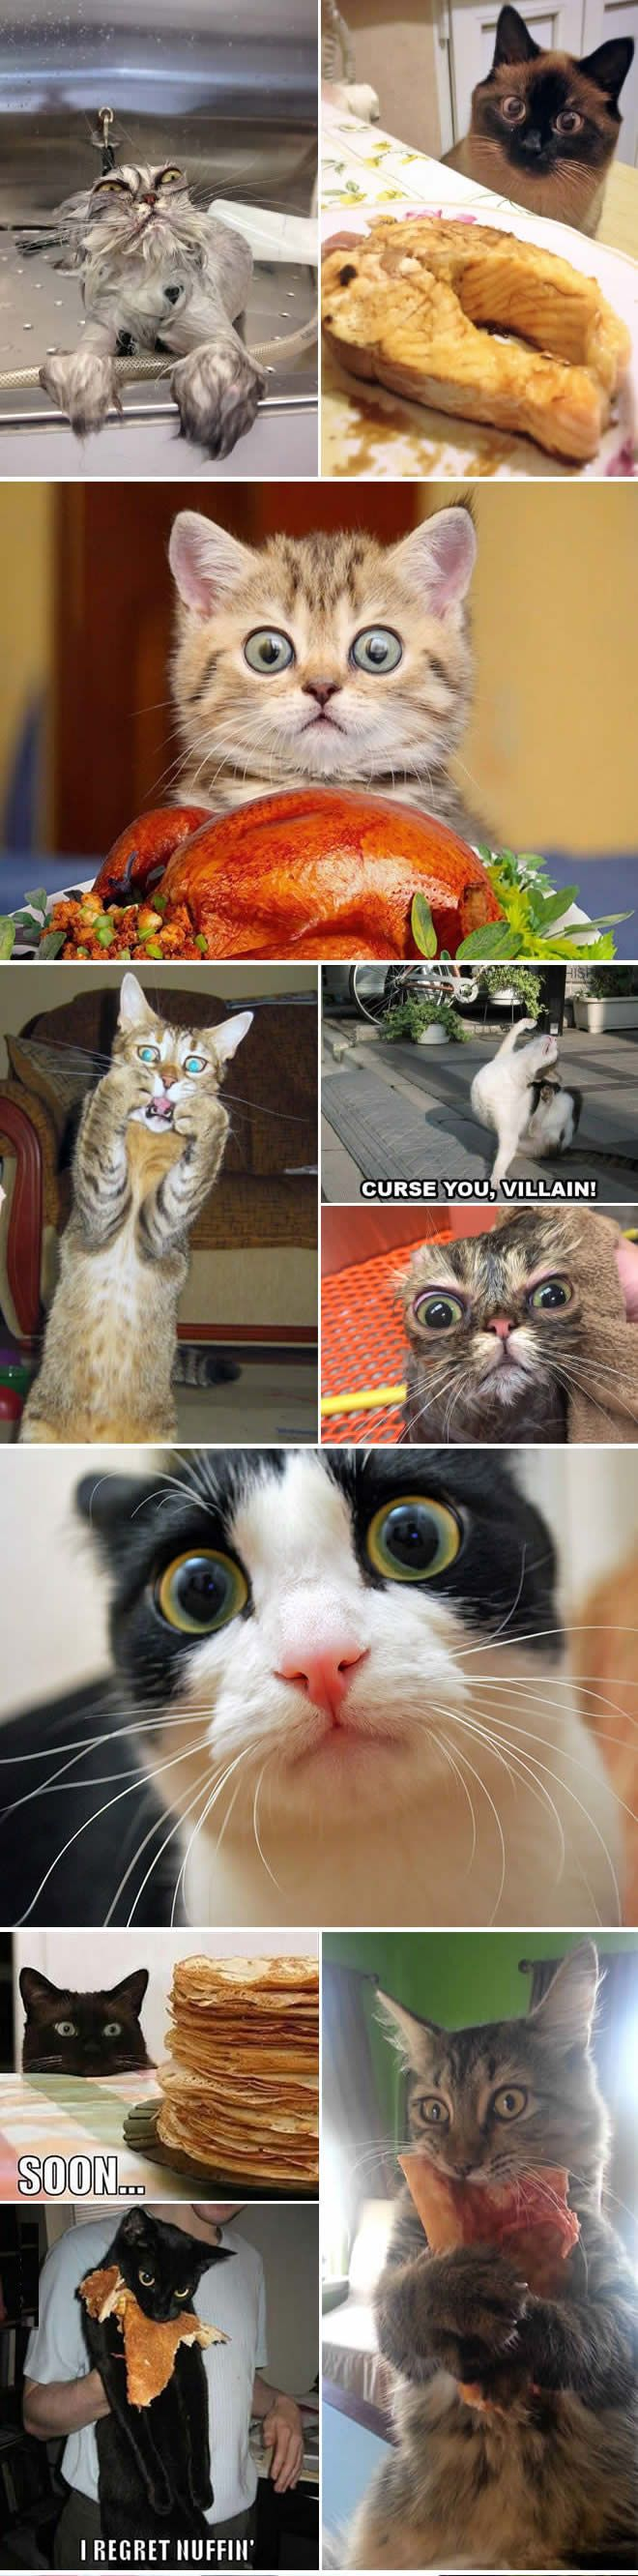 Cats Are Probably The Most Dramatic Meme